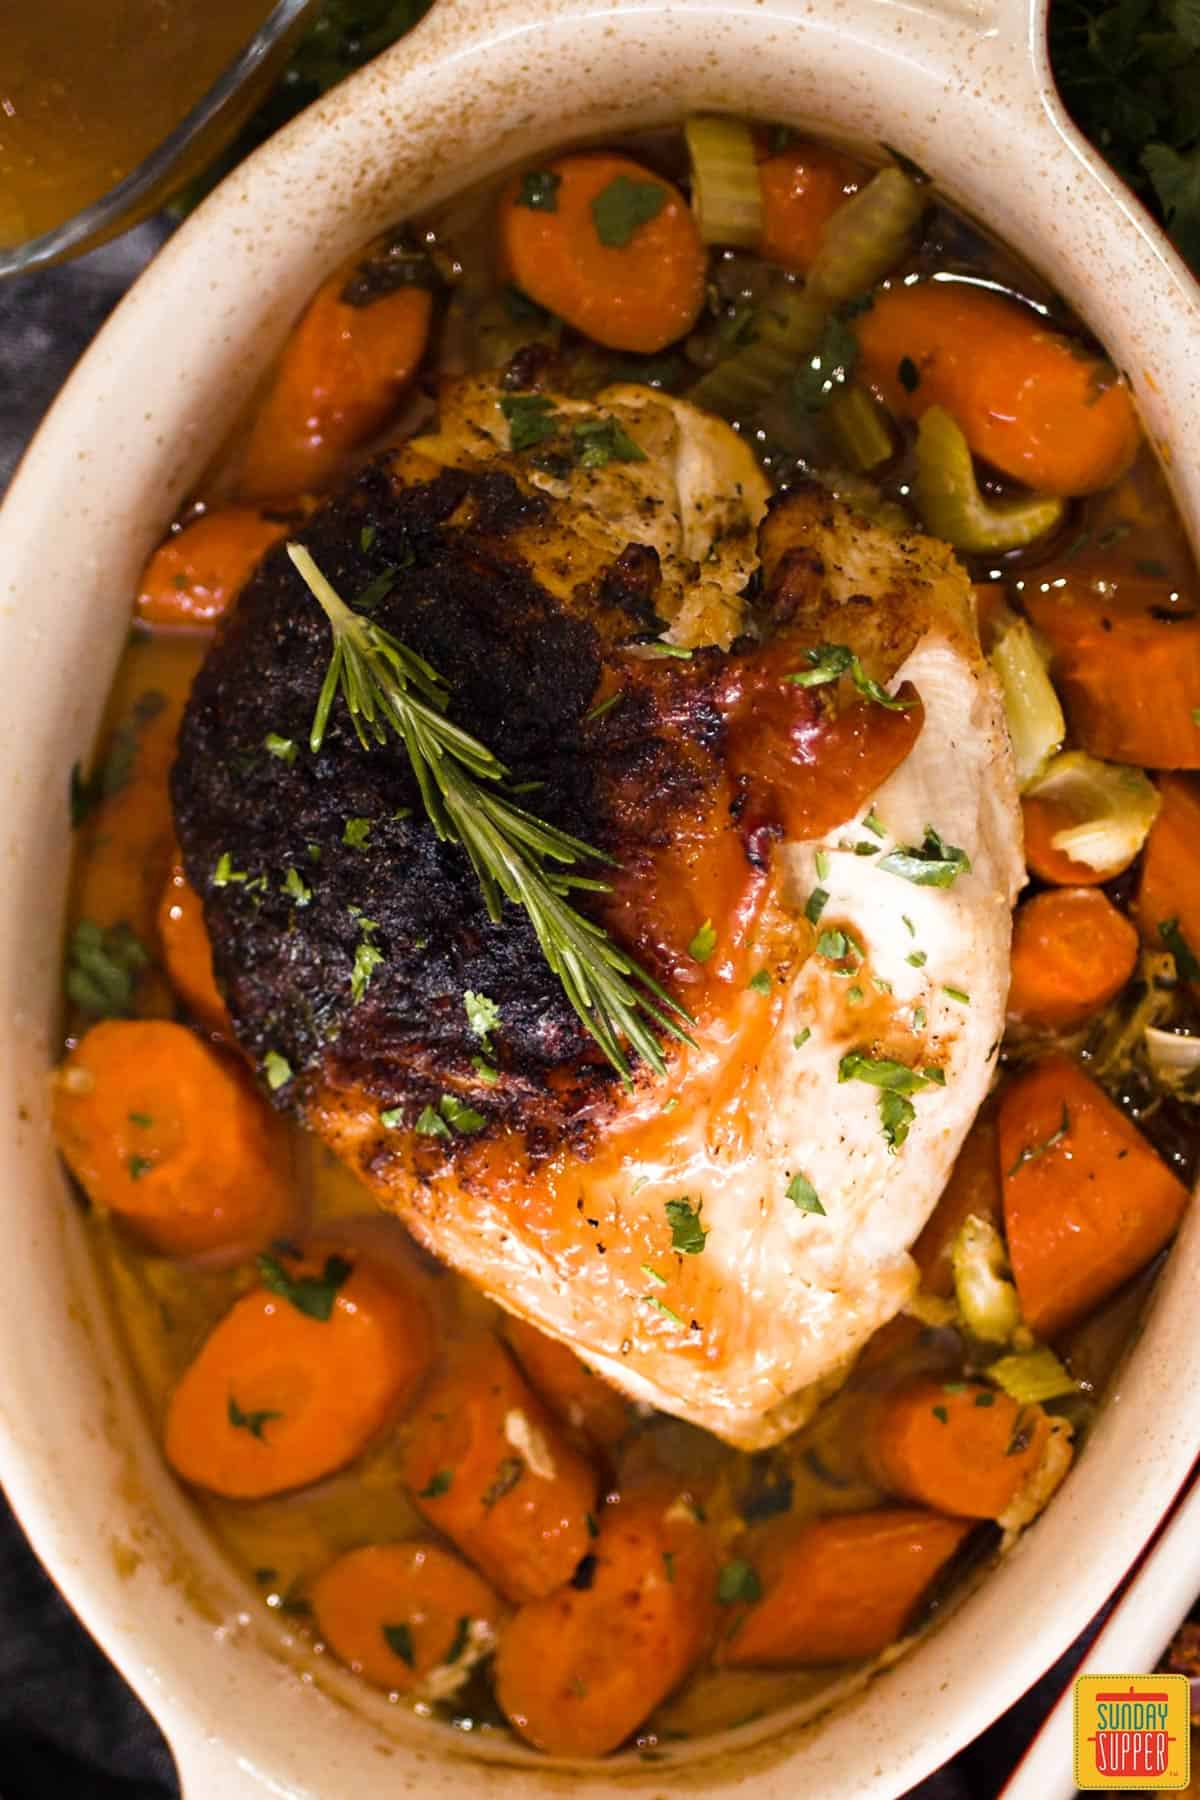 Roast turkey breast over carrots and celery in a baking dish